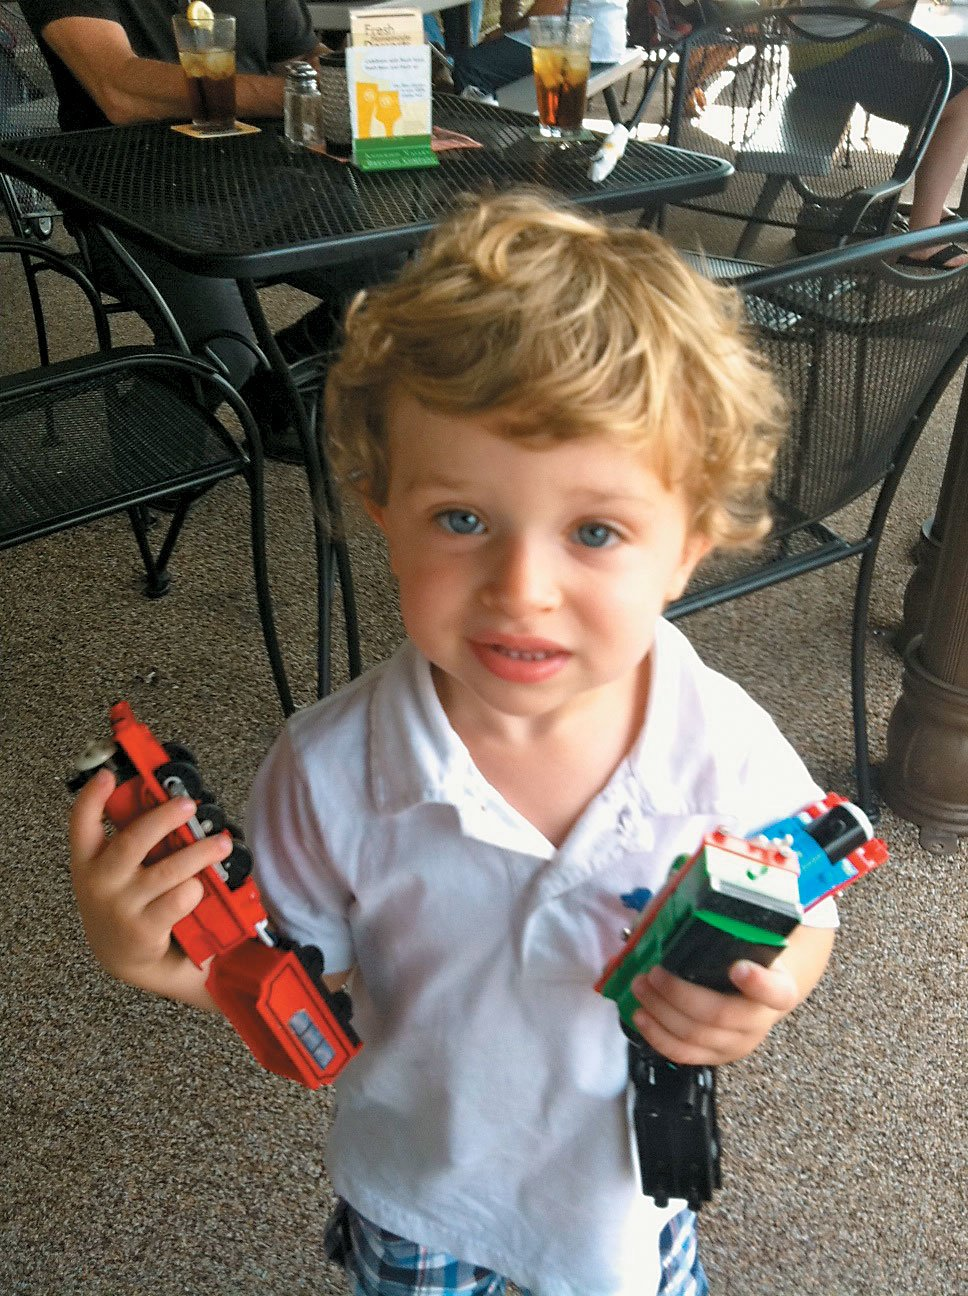 My grandson Levi with his beloved Thomas trains.